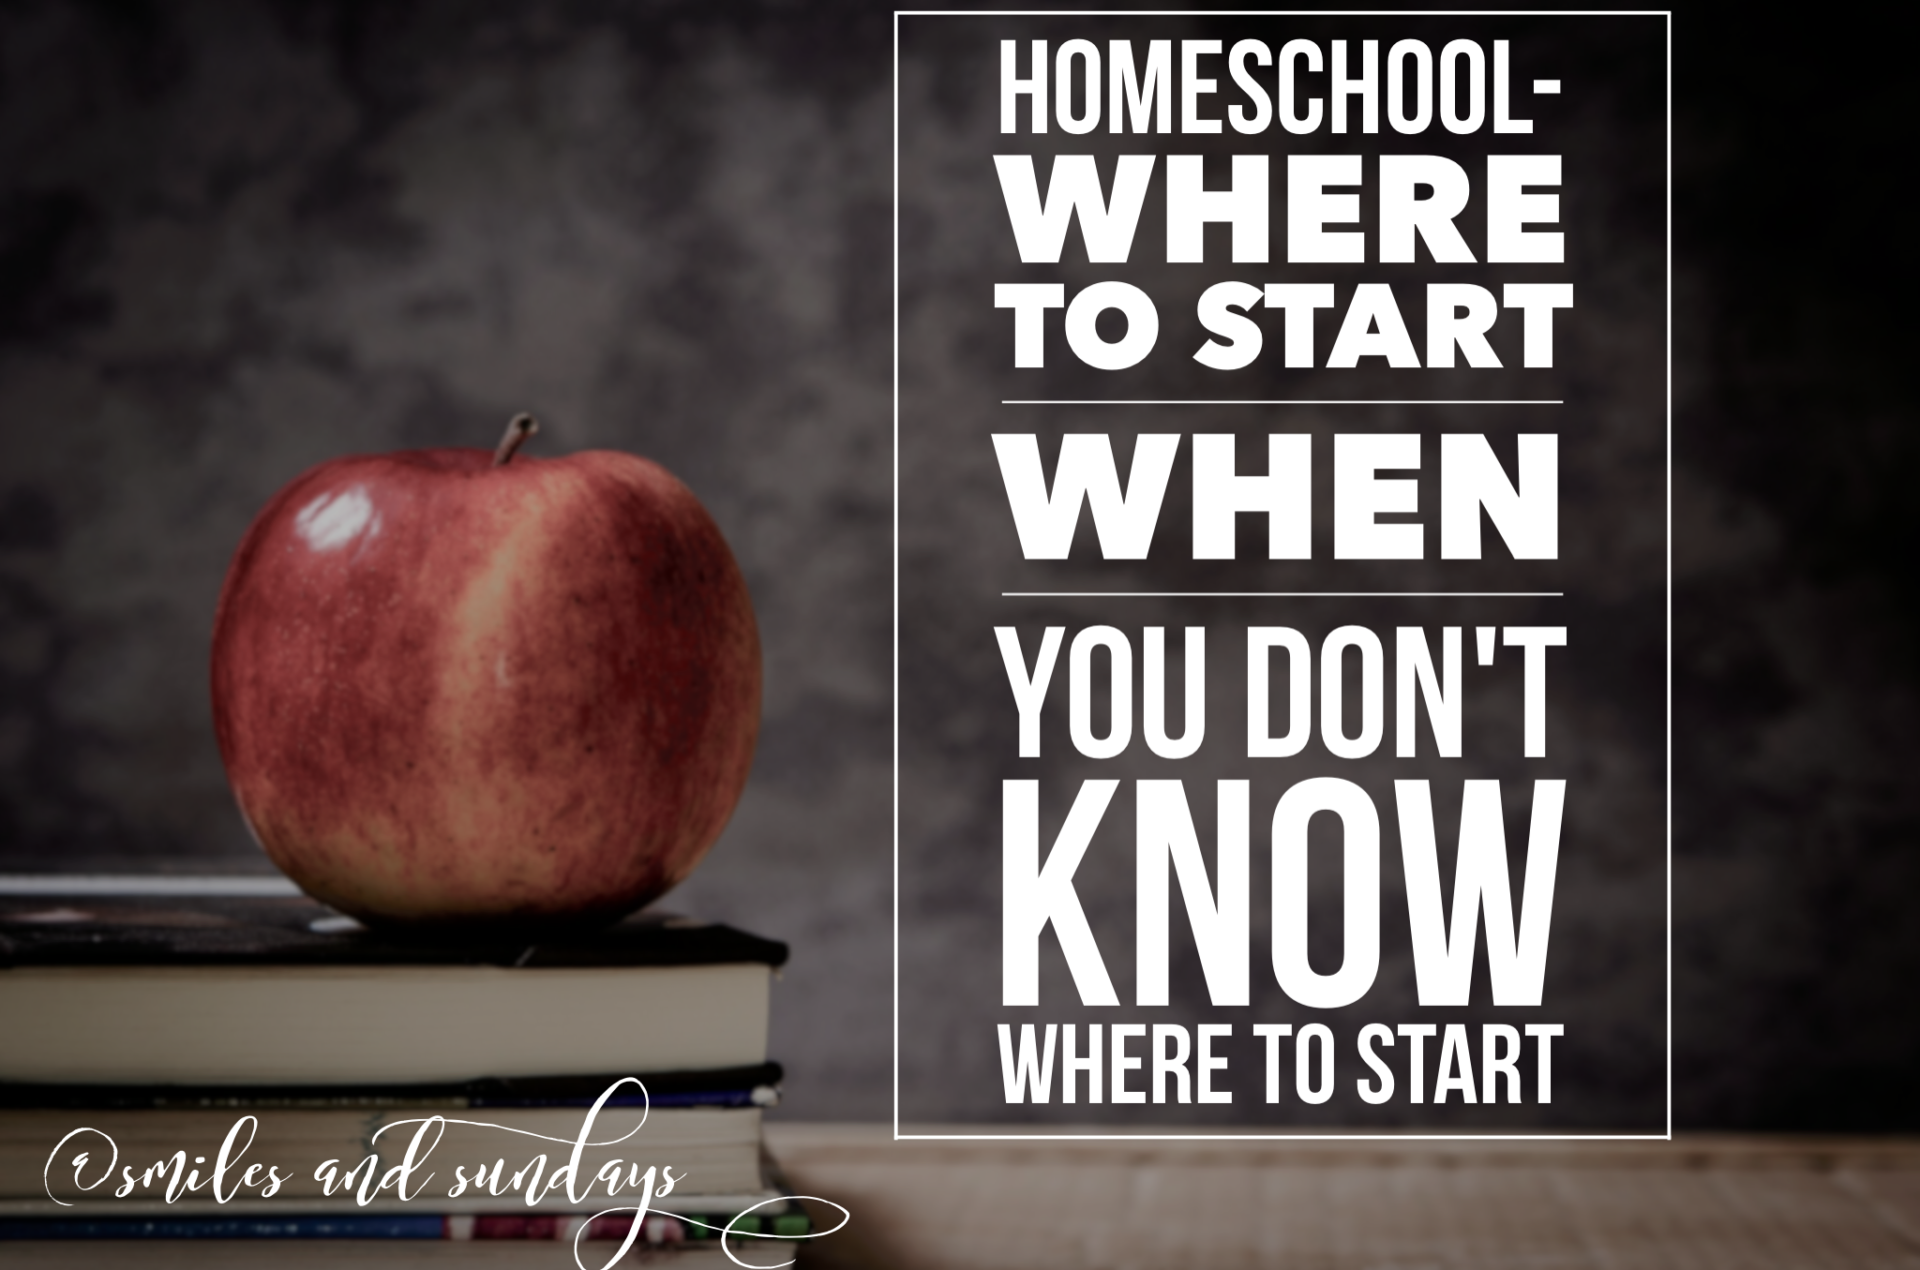 Homeschooling- Where to Start